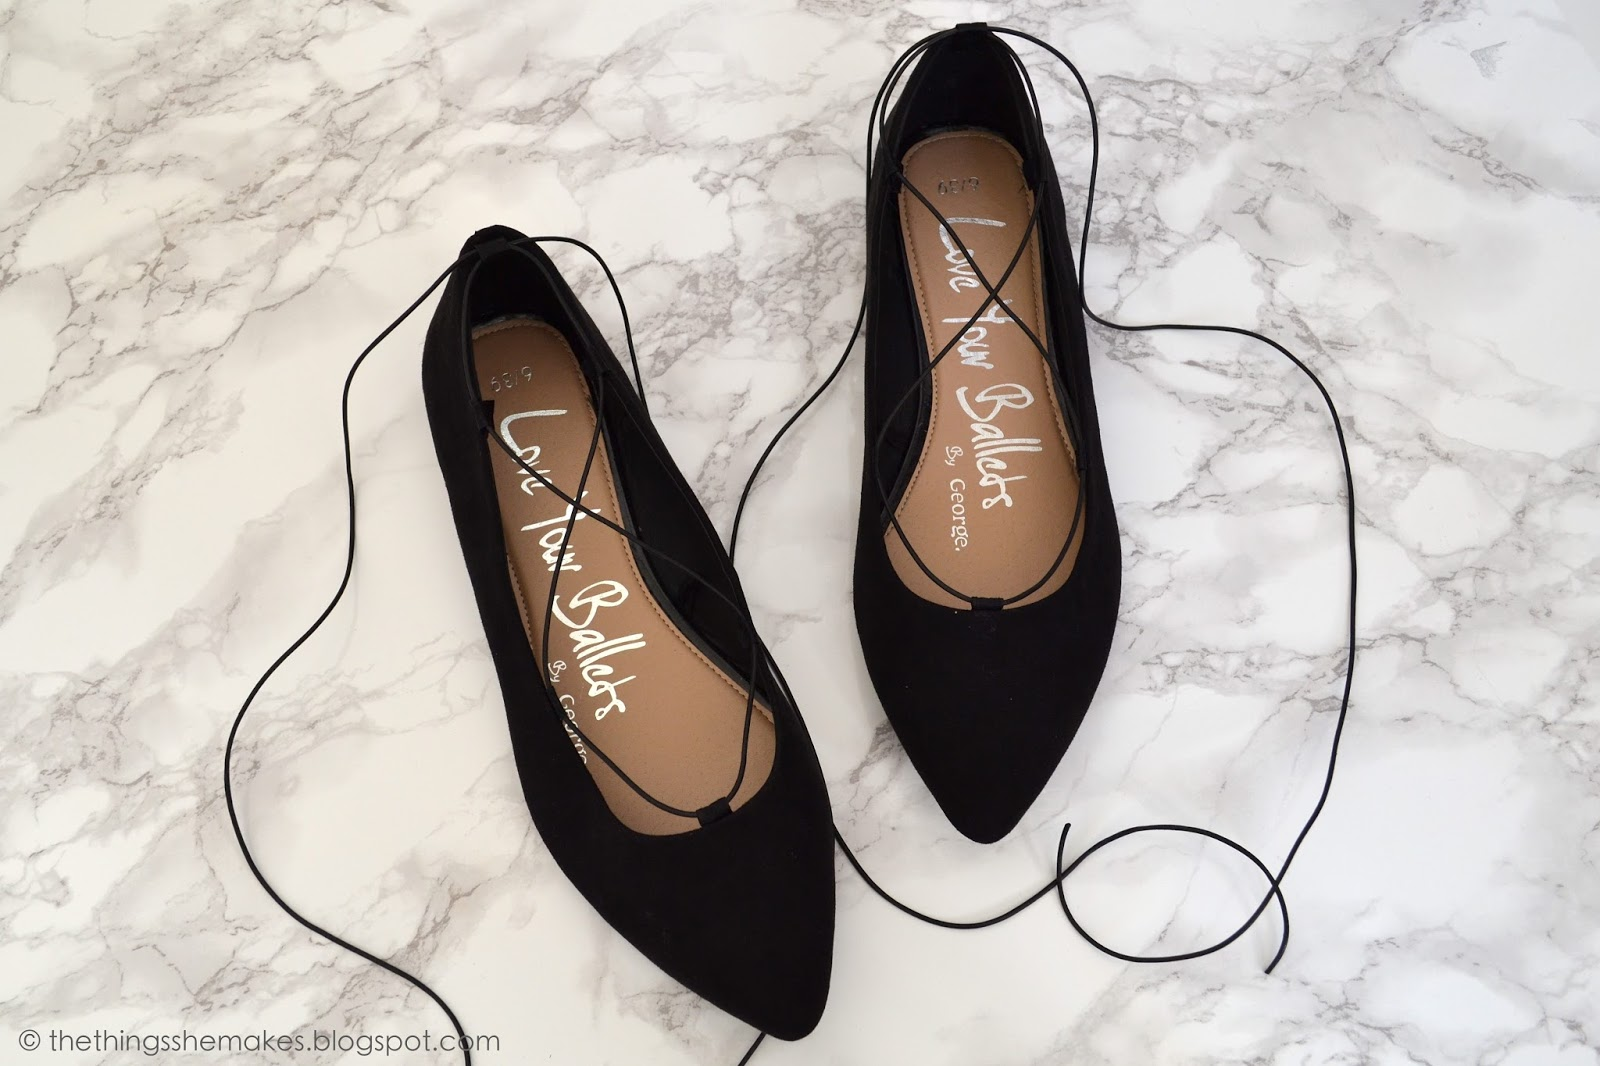 Discussion on this topic: Lovely DIY Lace Up Ballet Flats, lovely-diy-lace-up-ballet-flats/